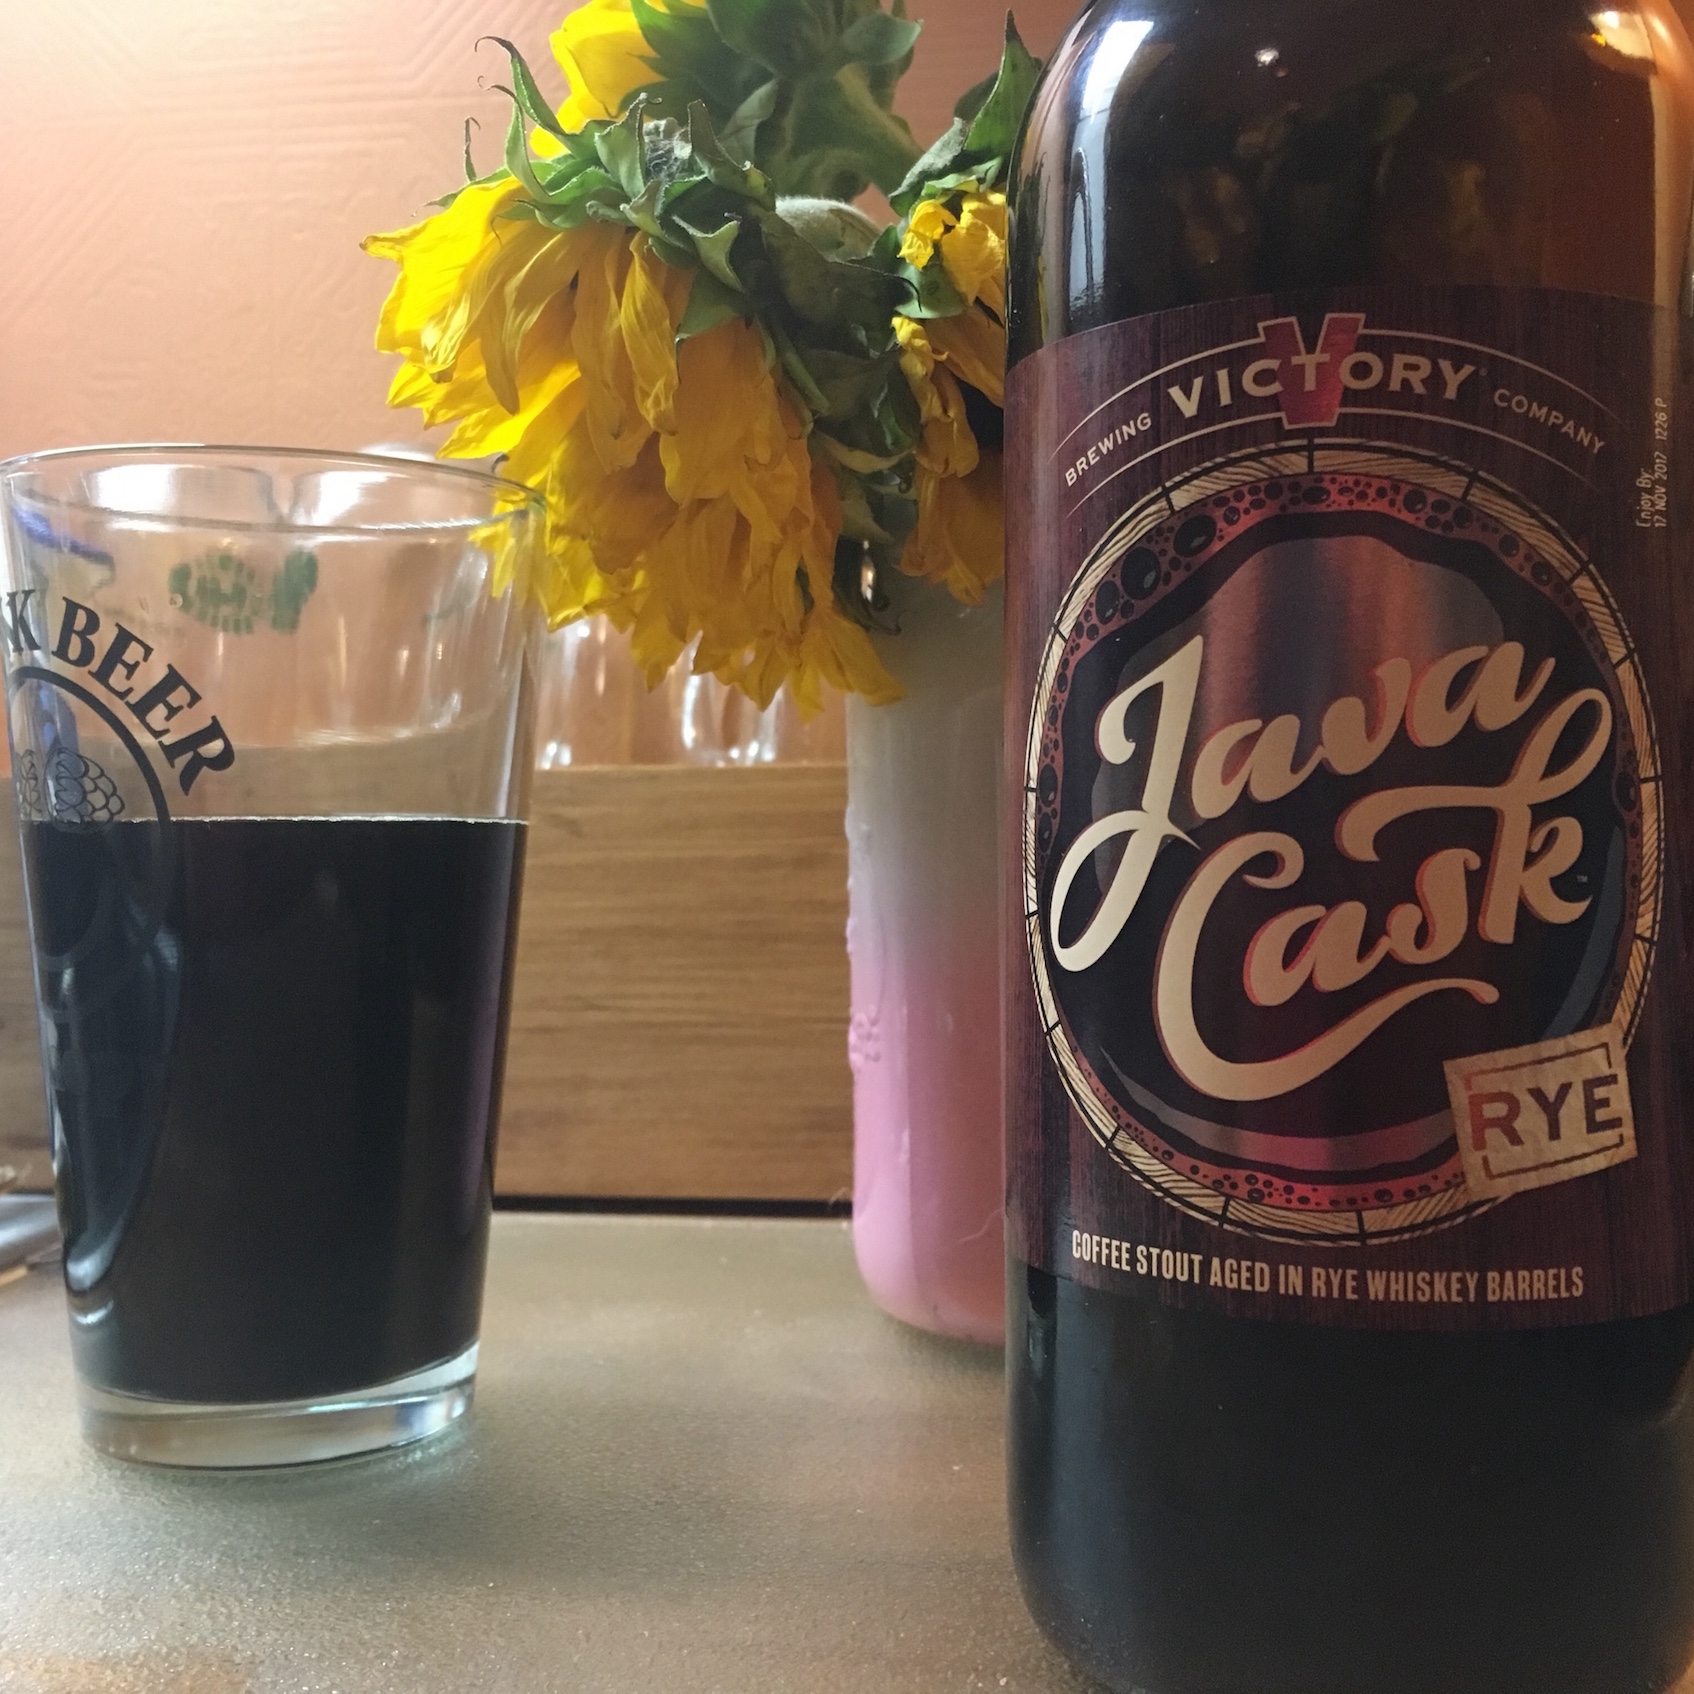 java-cask-rye-victory-brewing-co